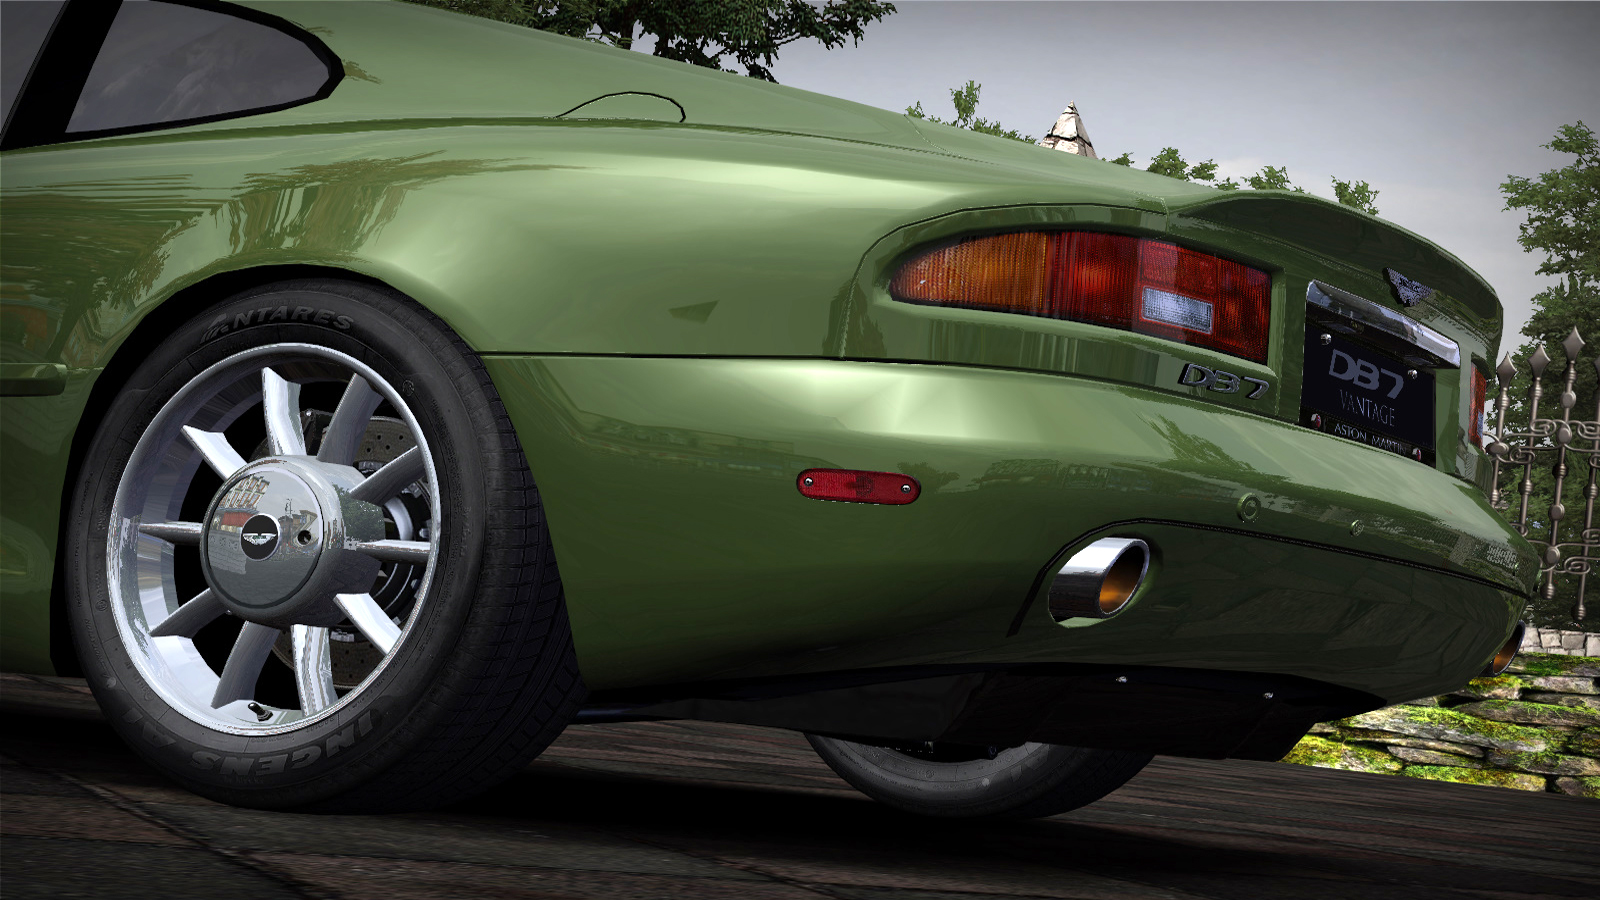 Speed 2020-01-05 19-02-23-814.jpg - Need for Speed: Most Wanted (2005) Aston Martin DB7 Vantage, Автомобиль